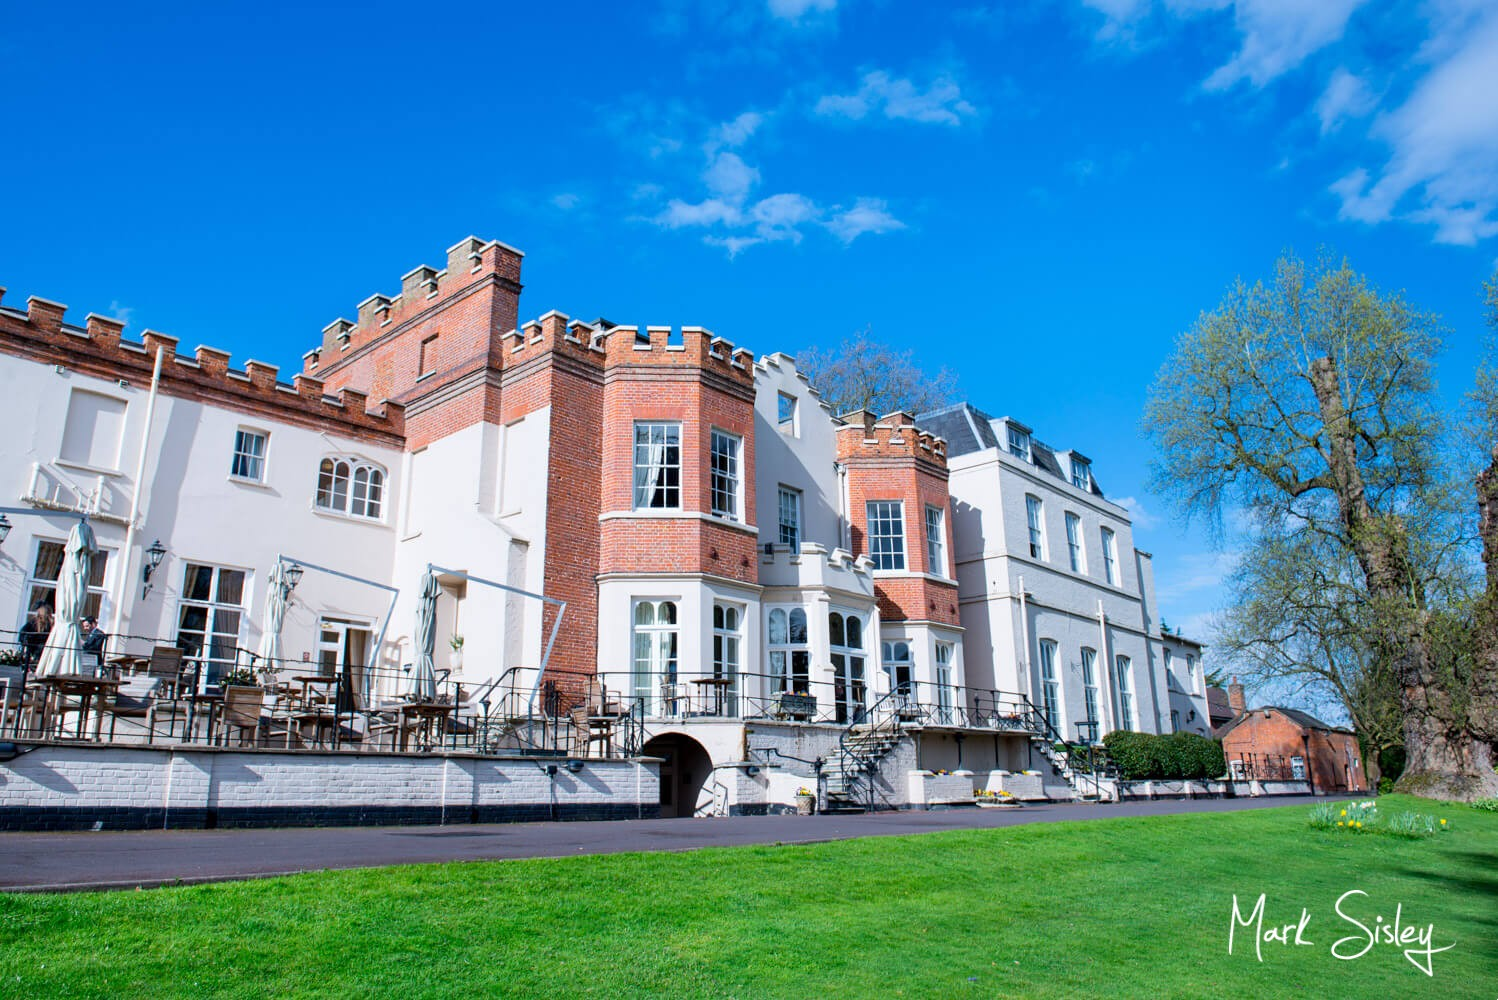 Taplow House has so many great options for wedding photos